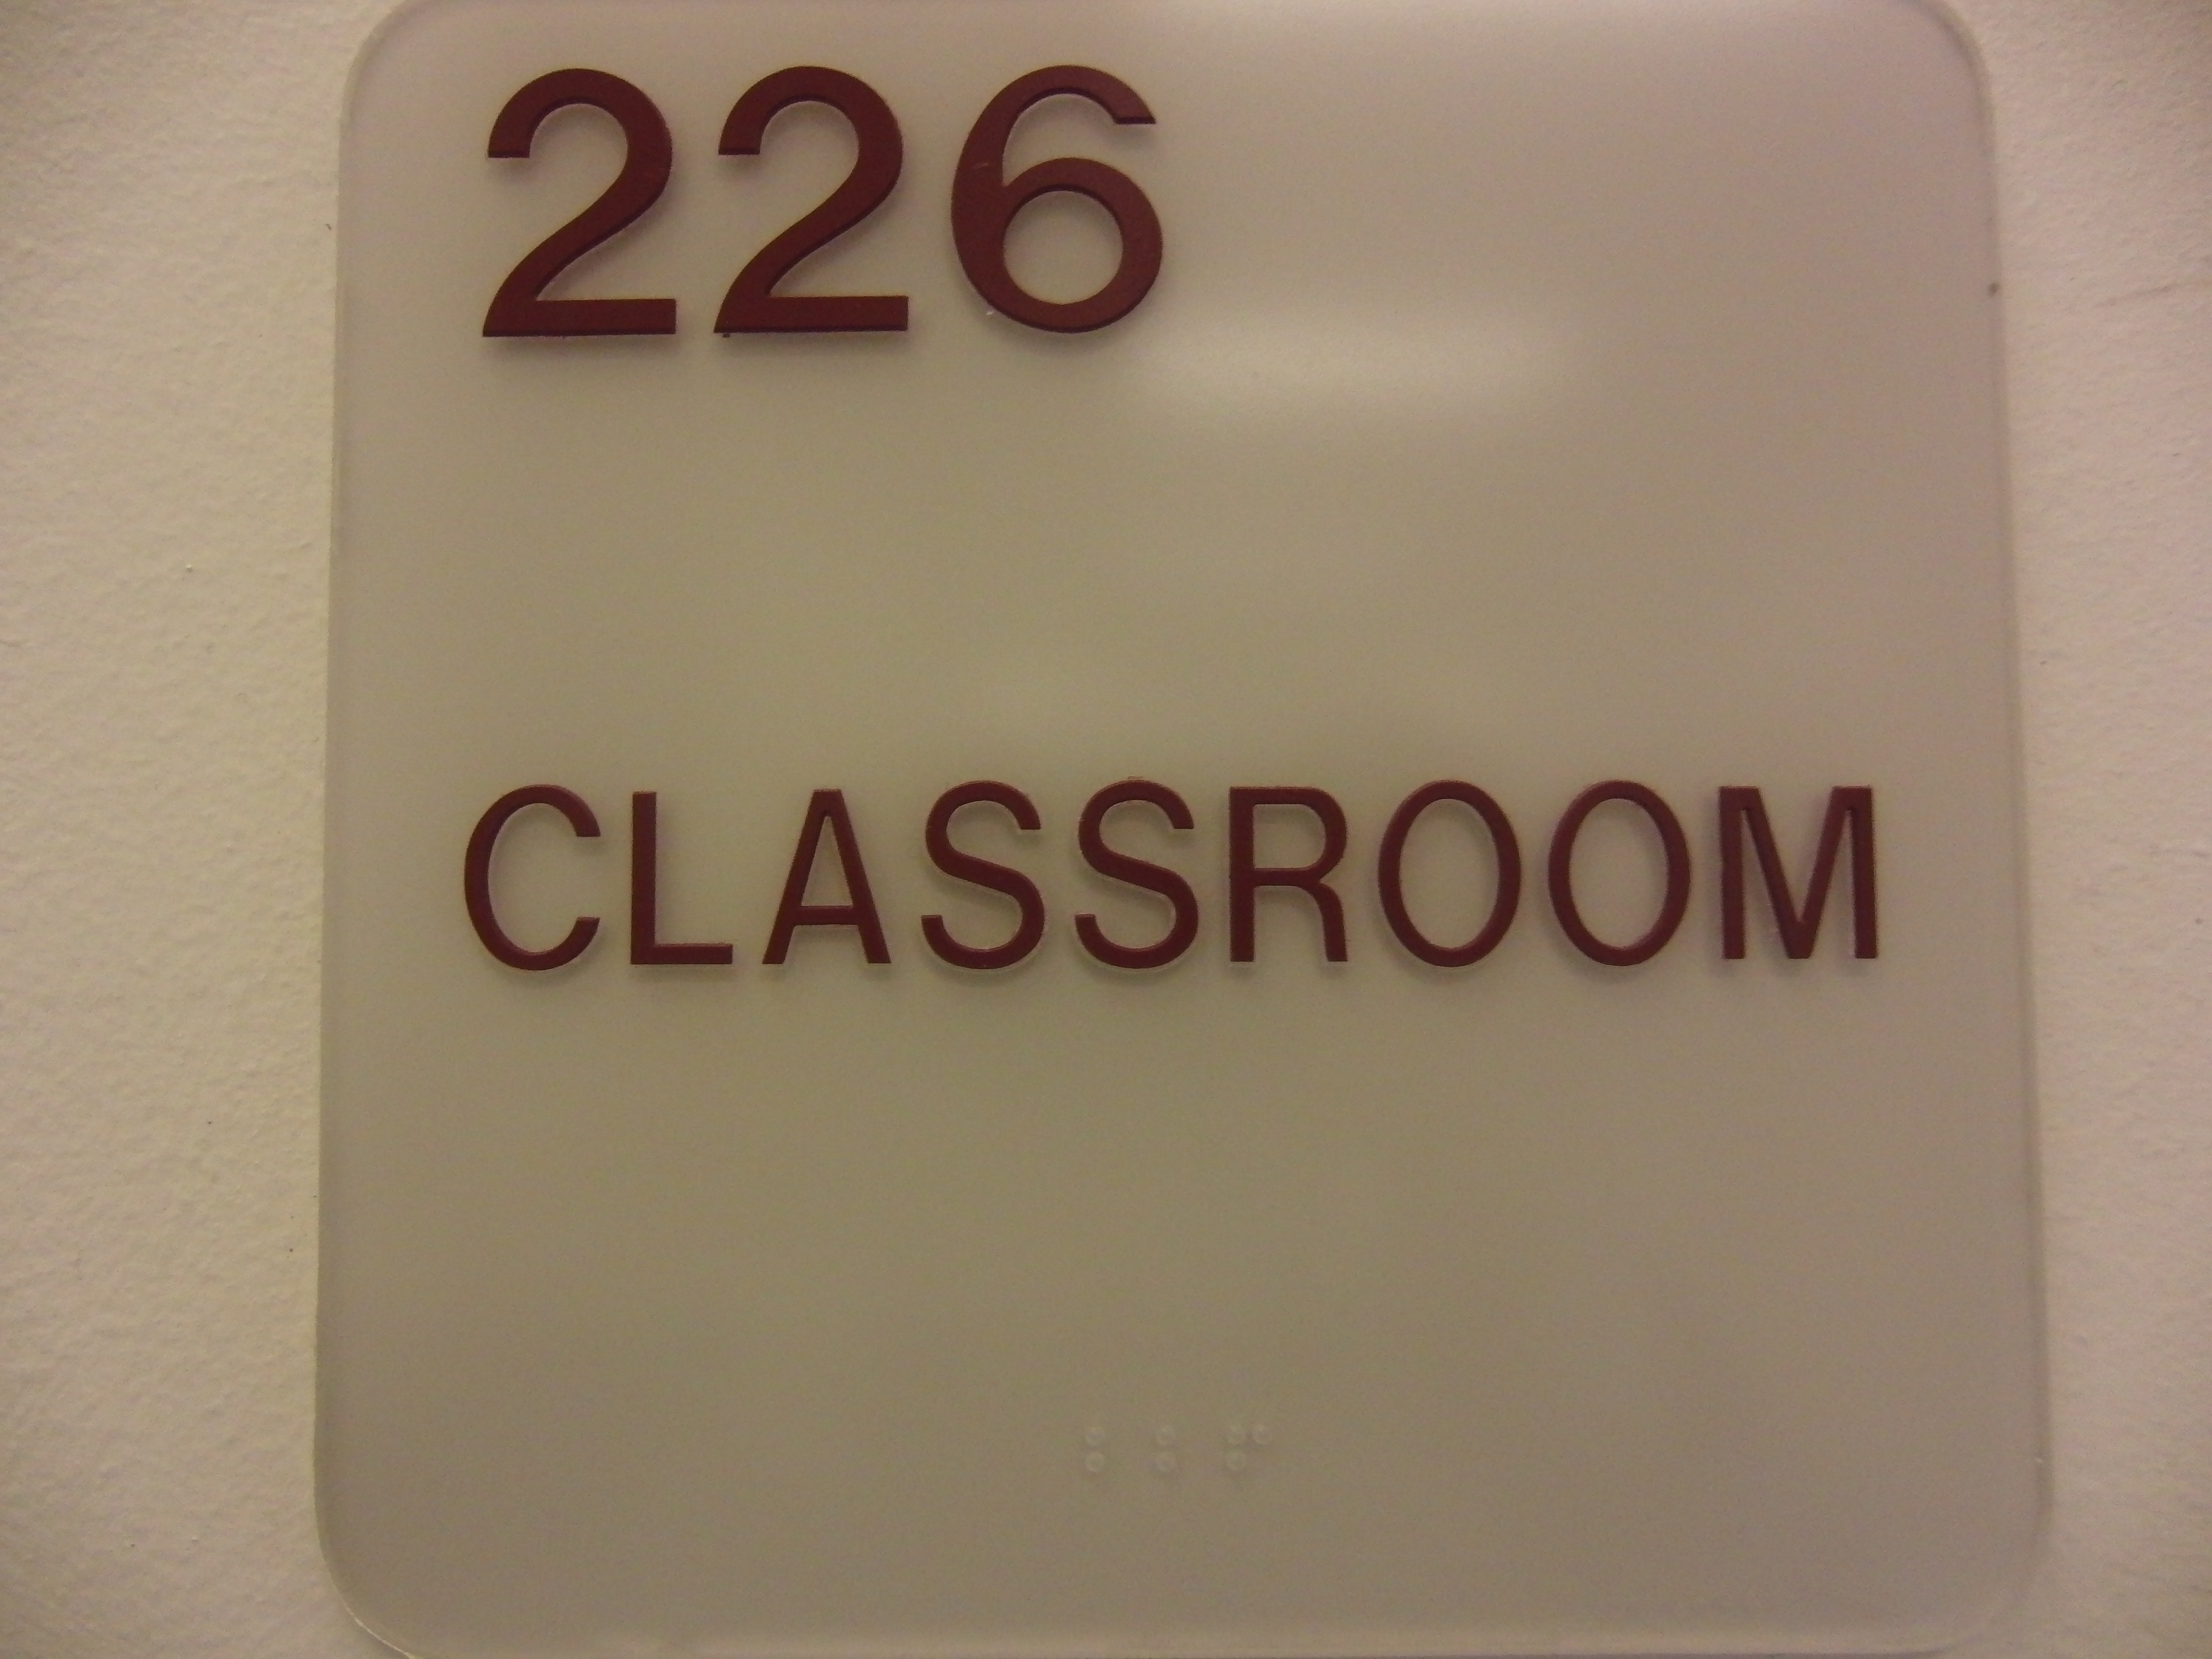 Photo of the McMichael 226 room number